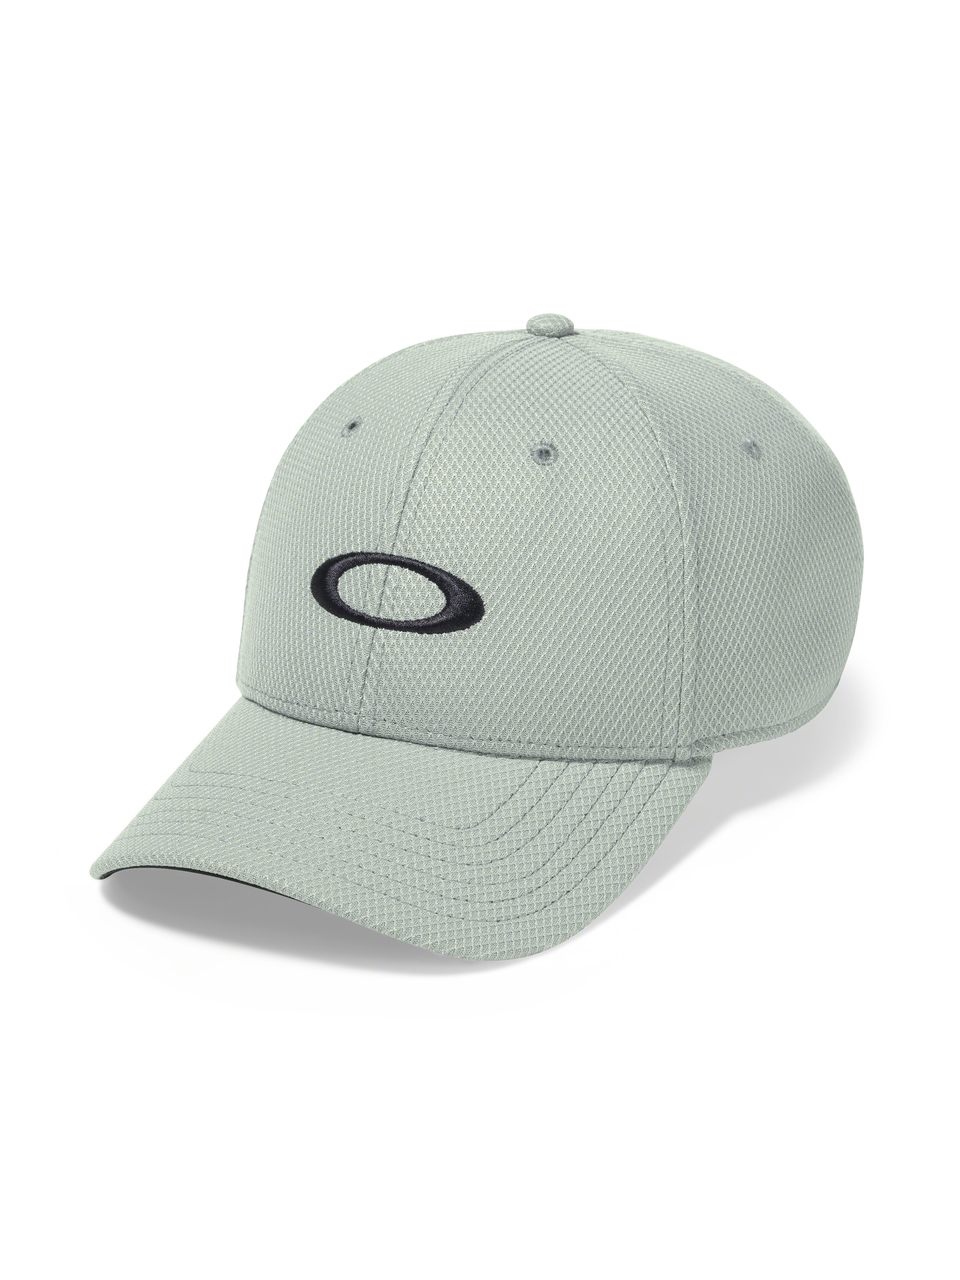 22297073308 Black OKC91809 Oakley Golf Ellipse Cap